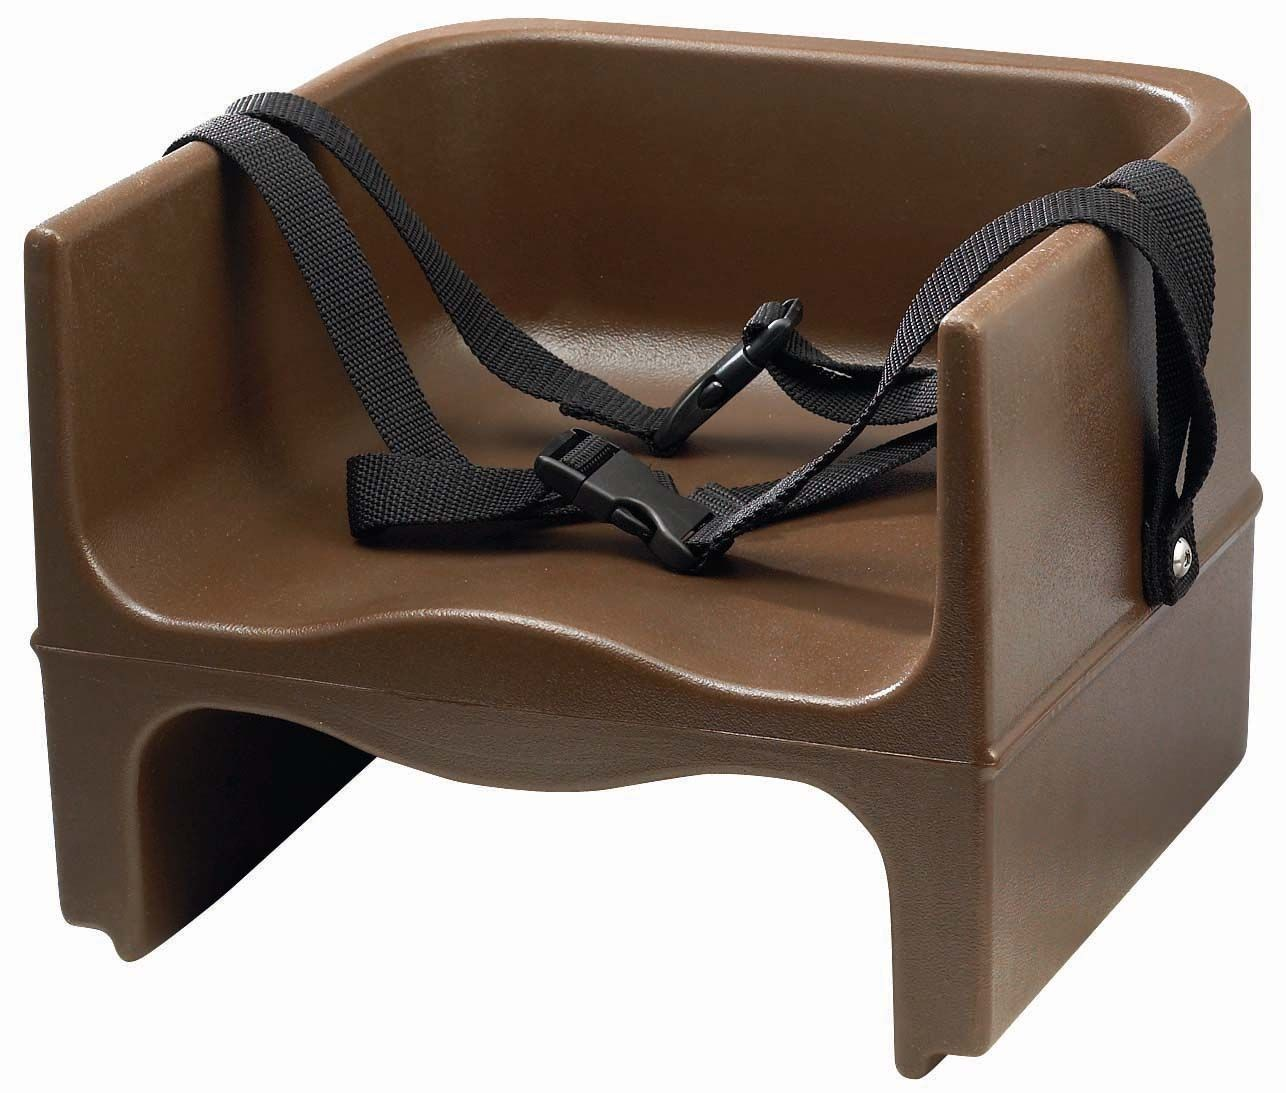 Winco CHB-2P Brown Double Sided Booster Seat with Non-Skid Surface